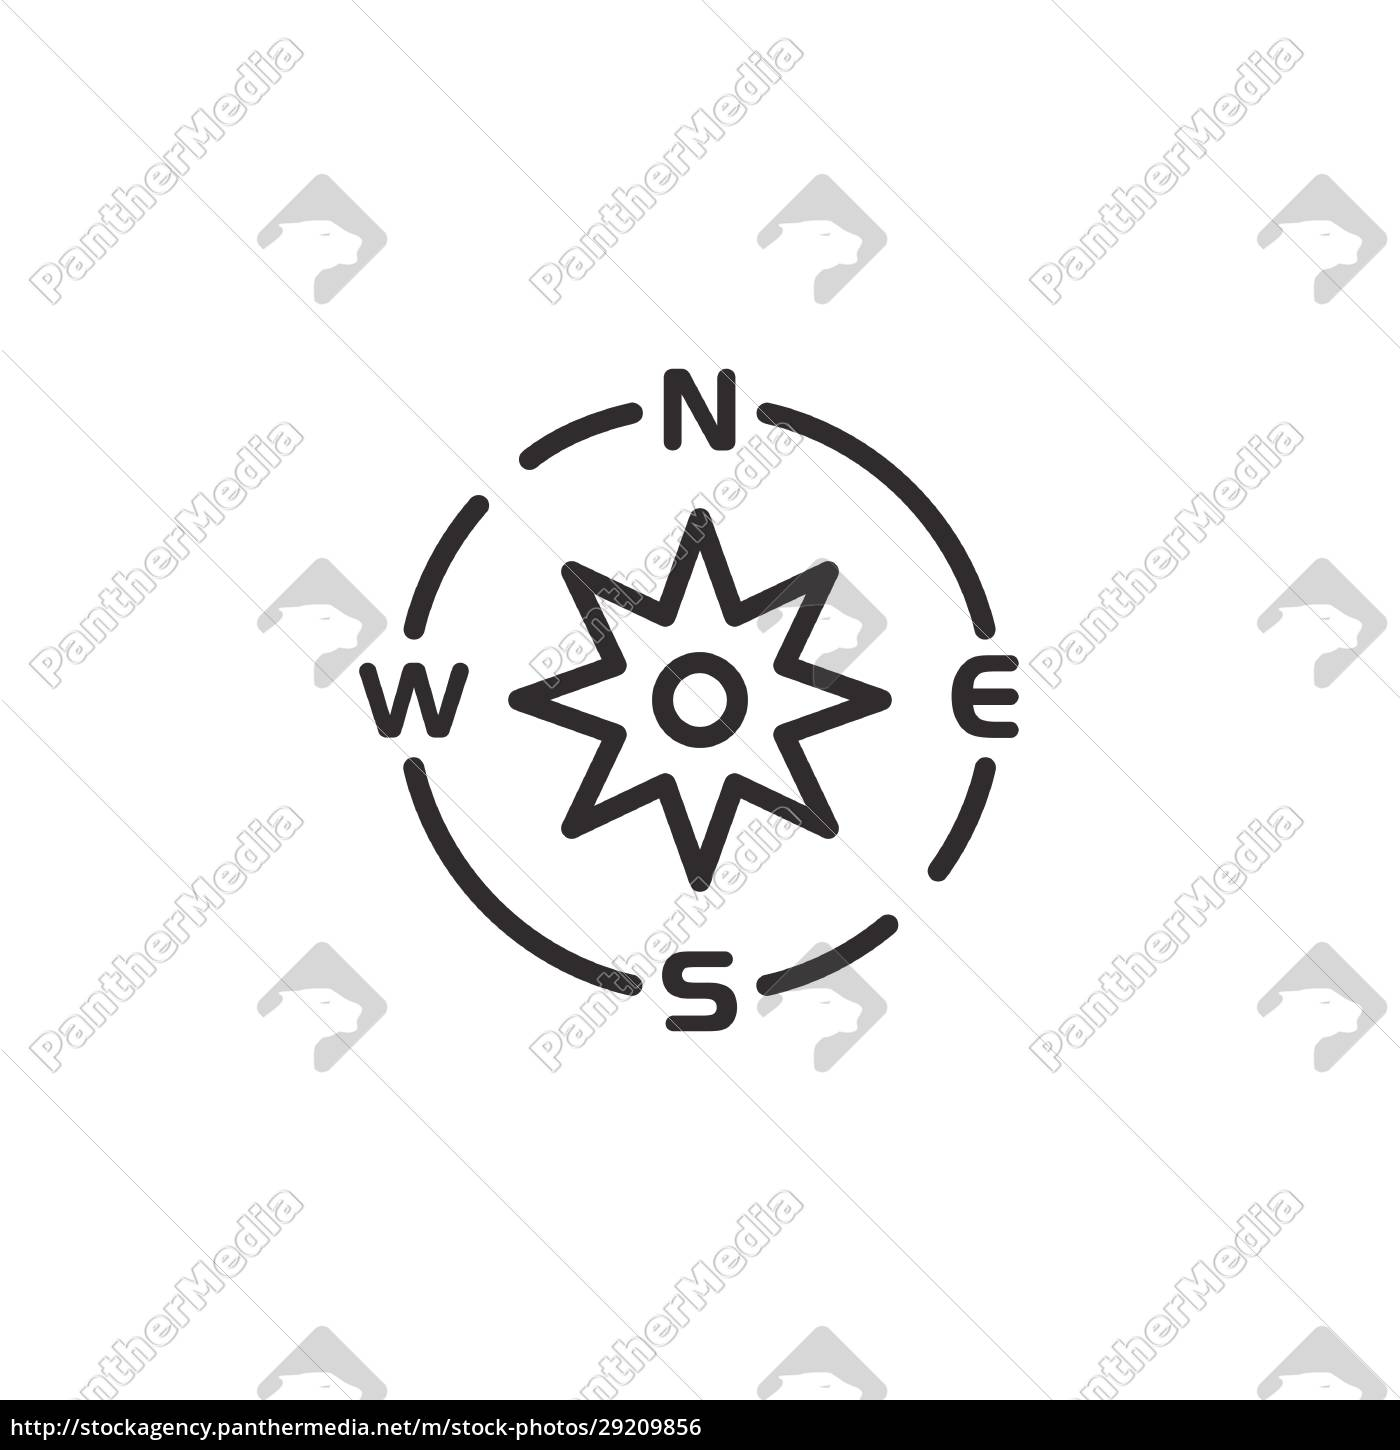 compass, thin, line, icon., isolated, weather - 29209856